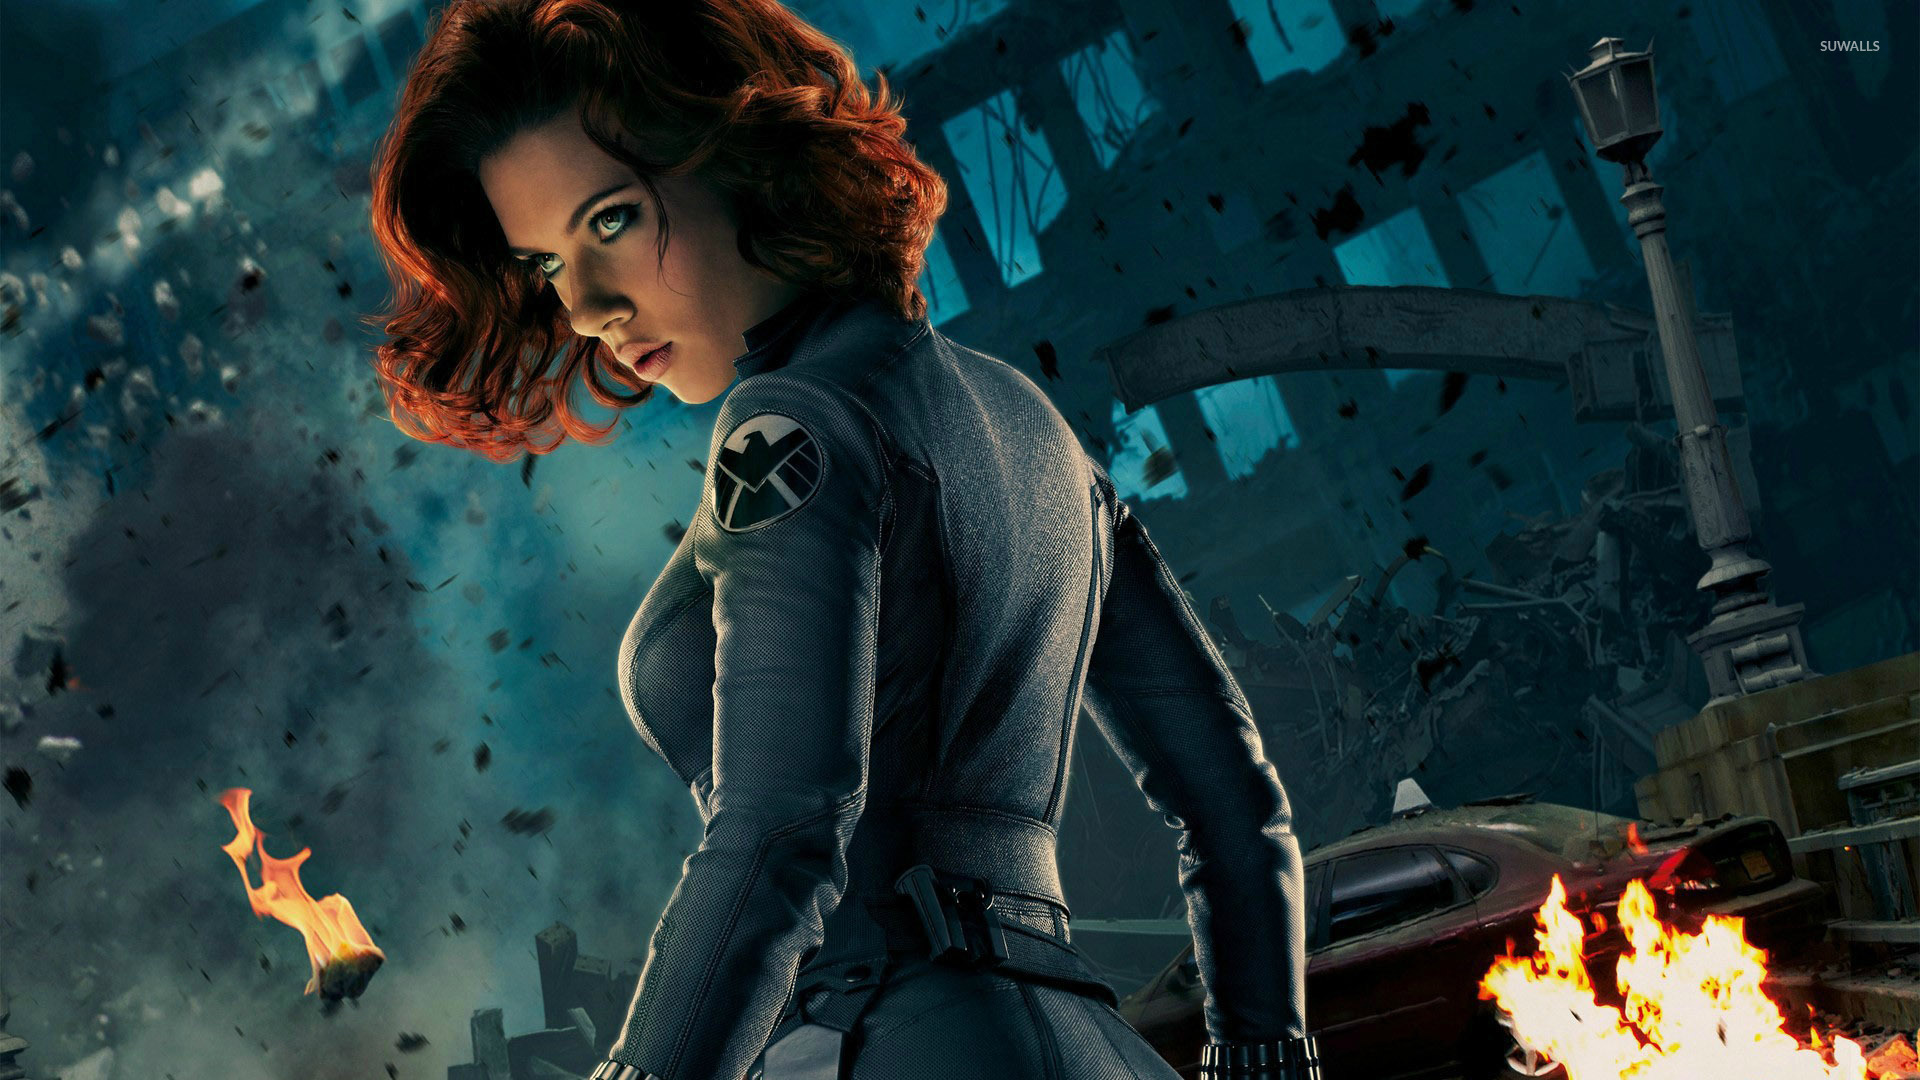 Black Widow The Avengers 3 Wallpaper Movie Wallpapers 27431